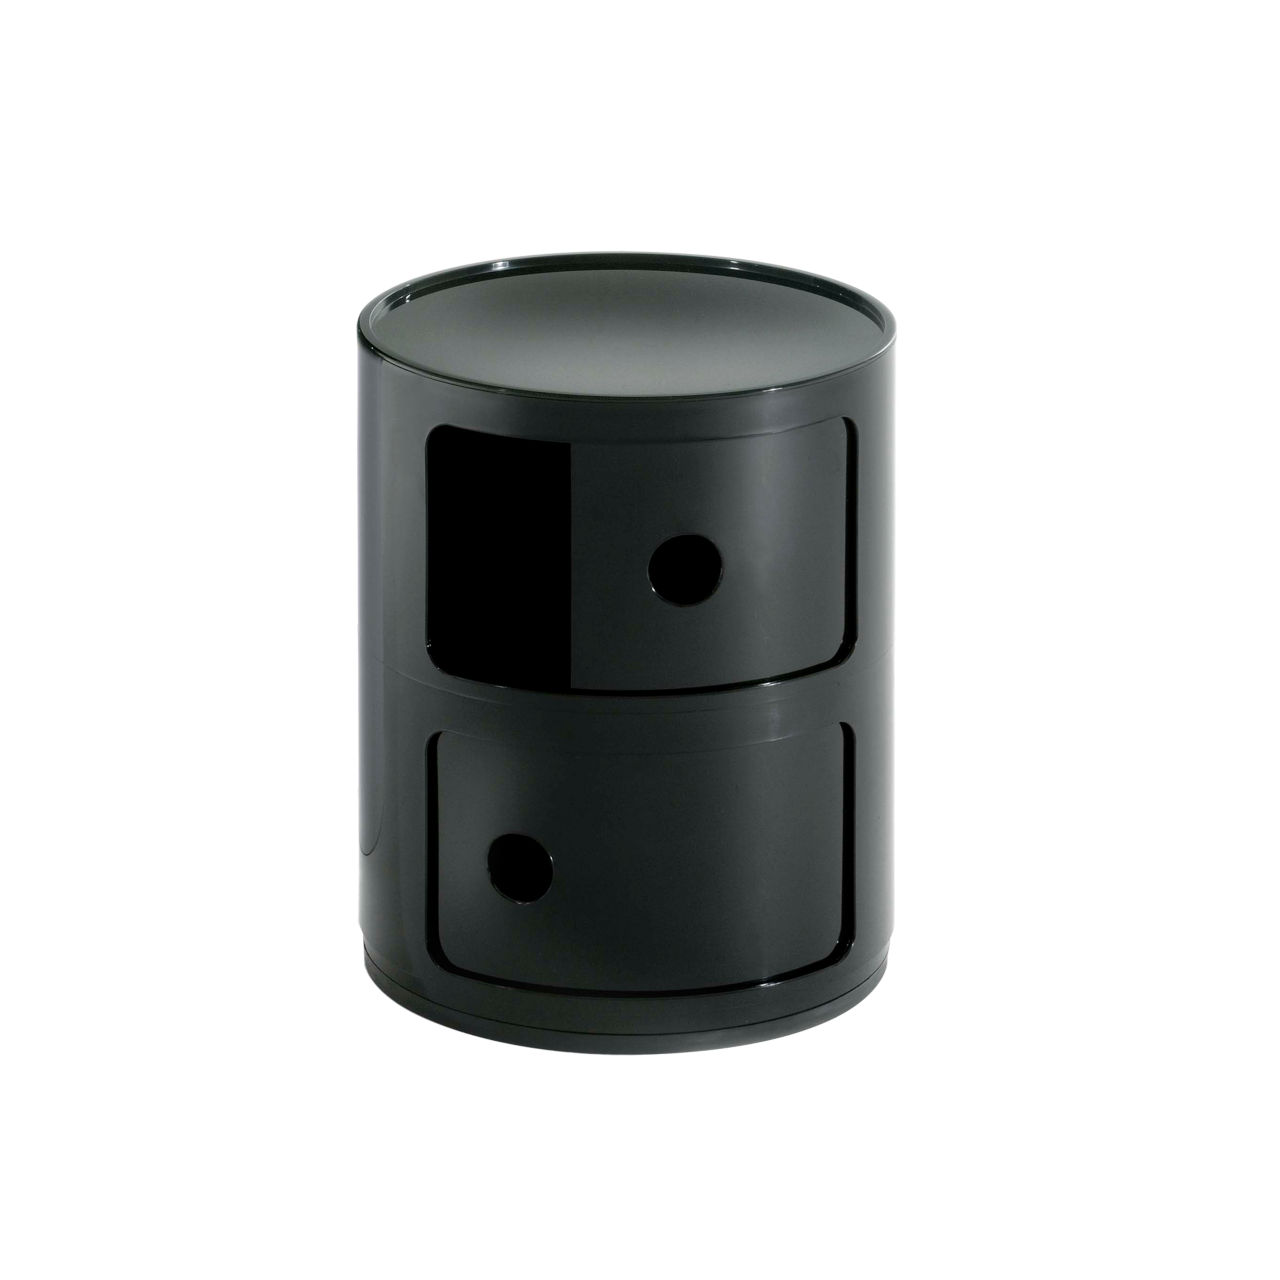 Componibili Small Round Storage Modules in Black by Kartell